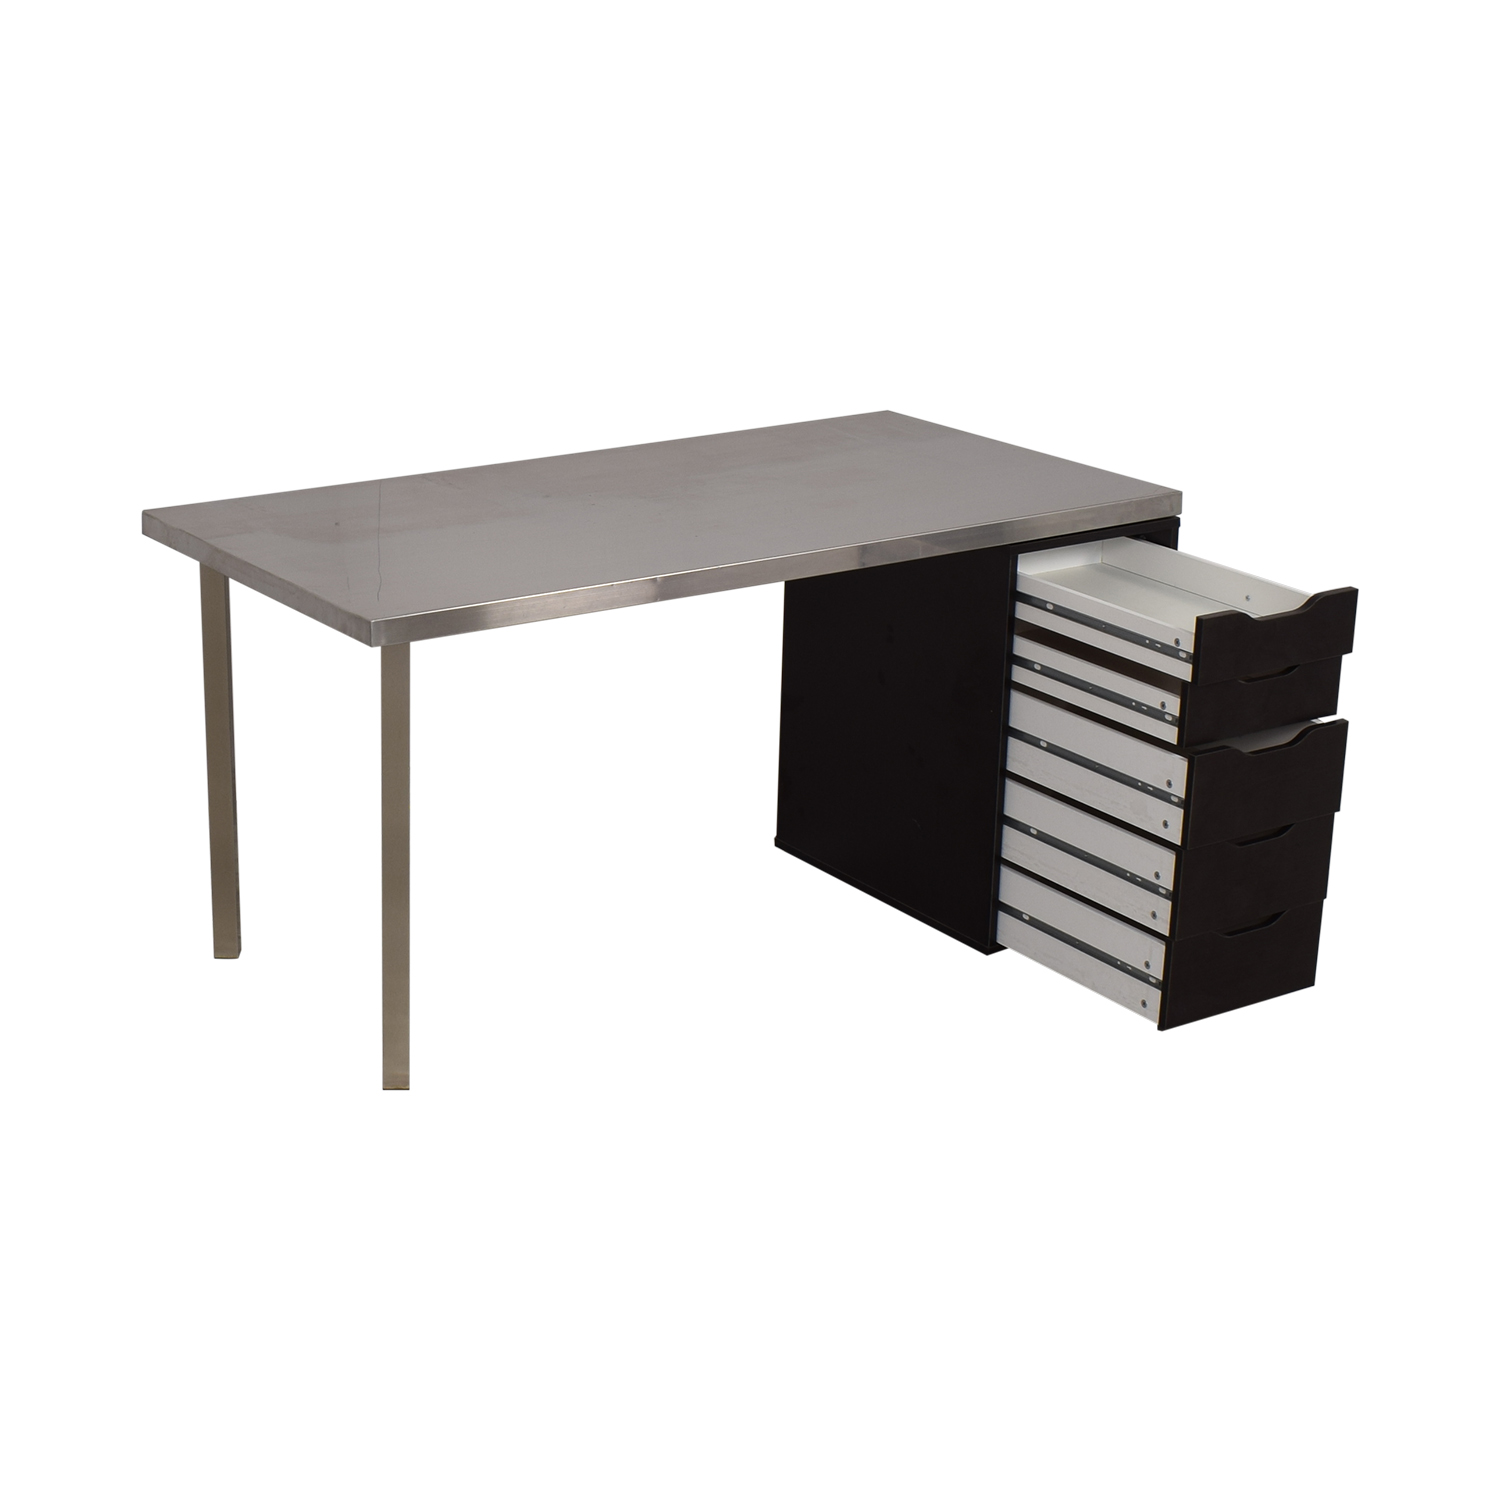 IKEA IKEA Sanfrid Stainless Steel Industrial Desk silver and black